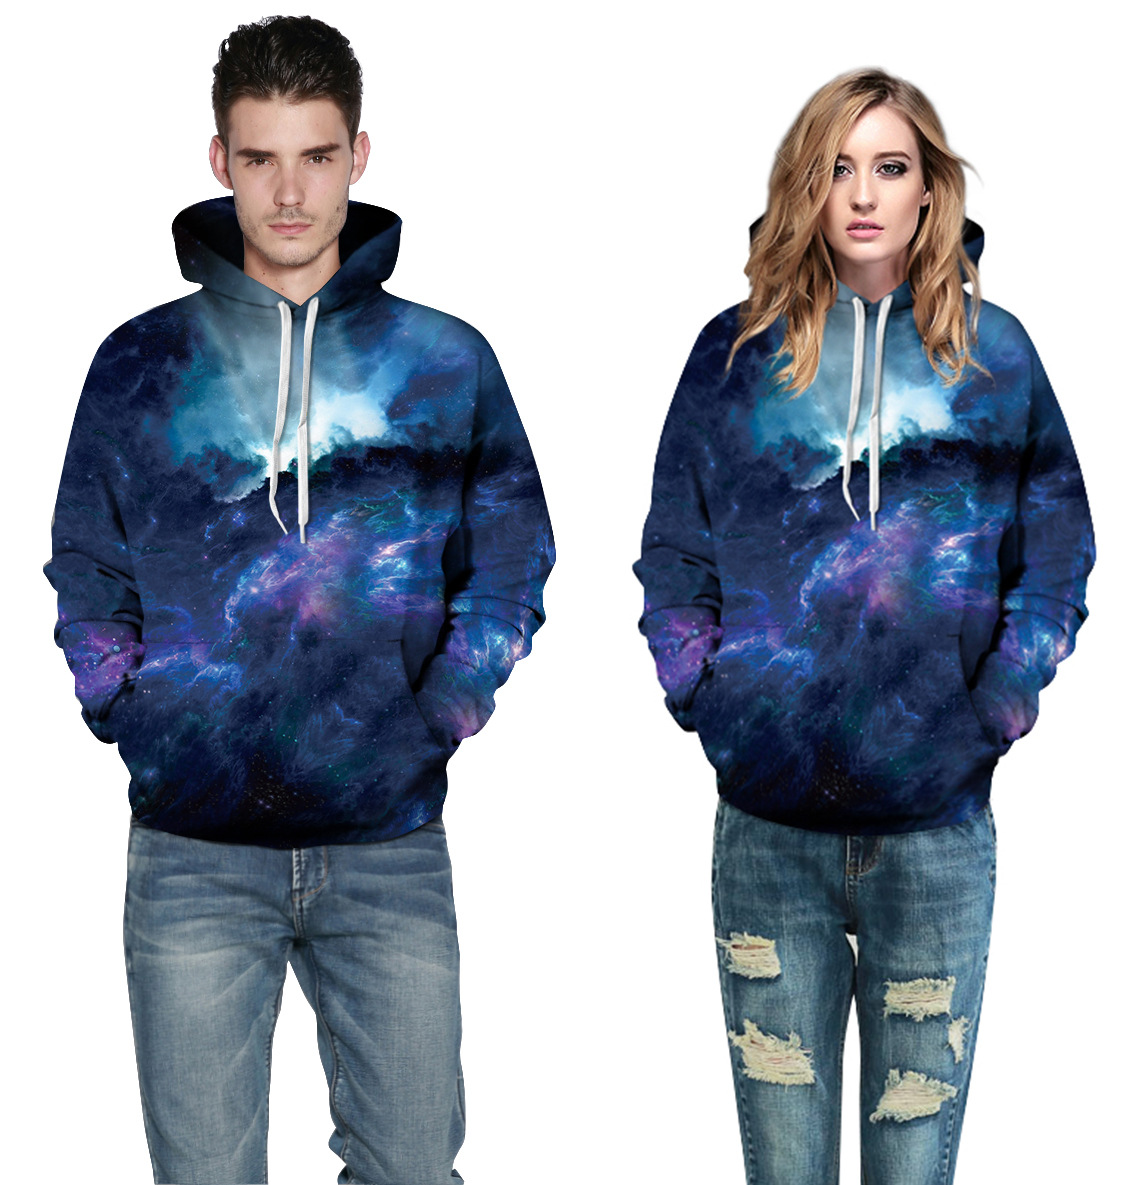 New Style Creative Digital Printing Men and Women Sweatshirt Starry Sky Pattern Printing Pullovers Loose Large Size Casual Wear